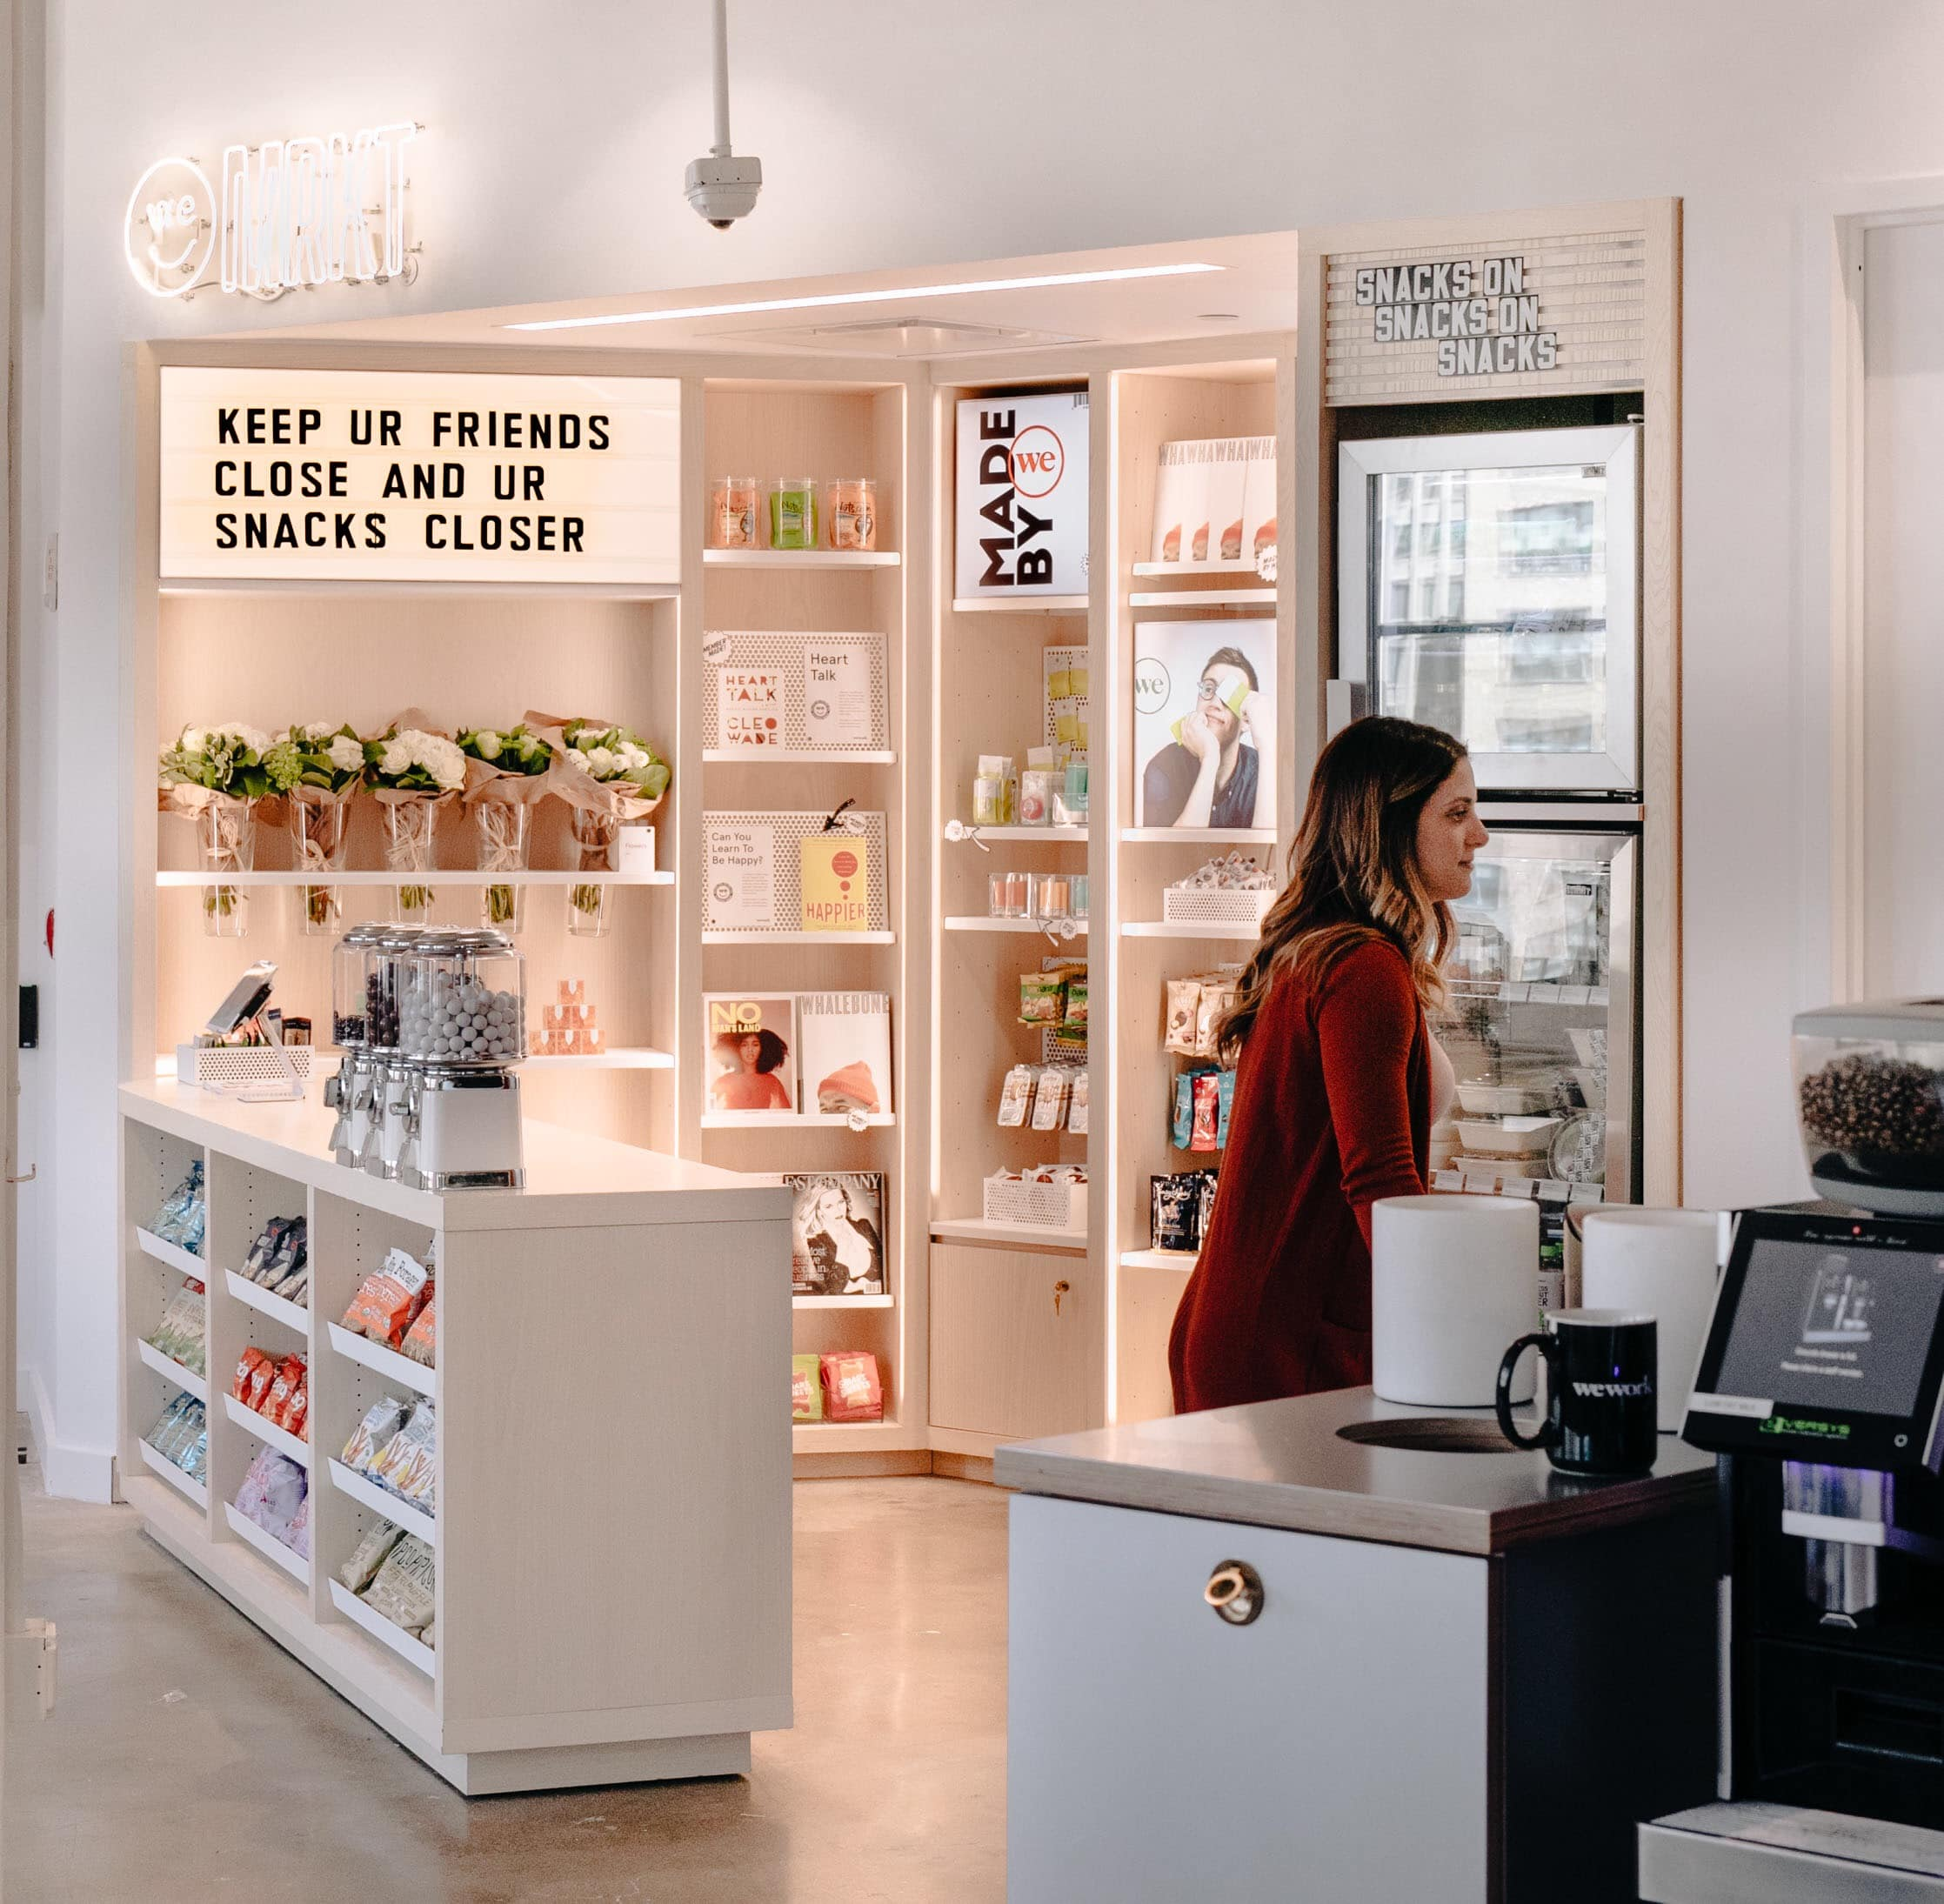 WeWork Looks to Expand its WeMrkt Concept Across The US and Abroad